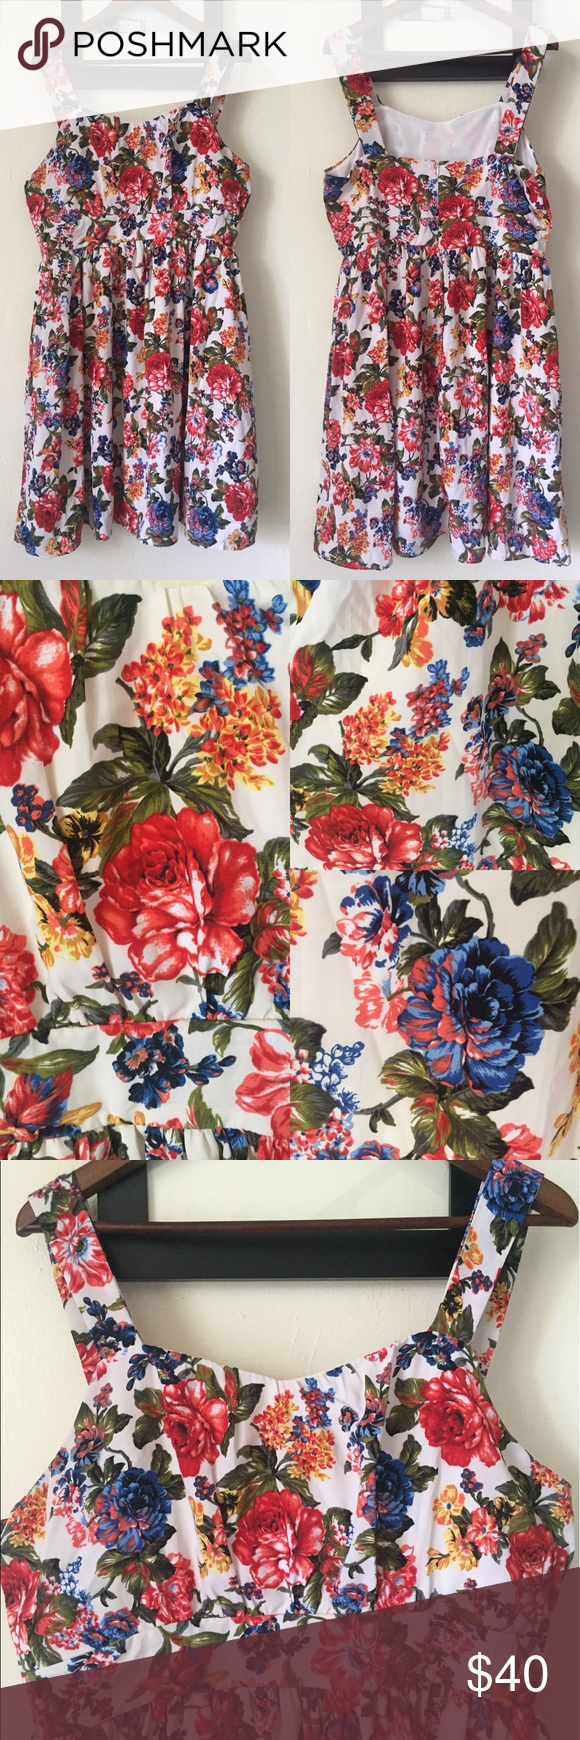 1d5875c74c Modcloth s Belles in your Courtyard Flower Dress So many flowers! Included  a close up of